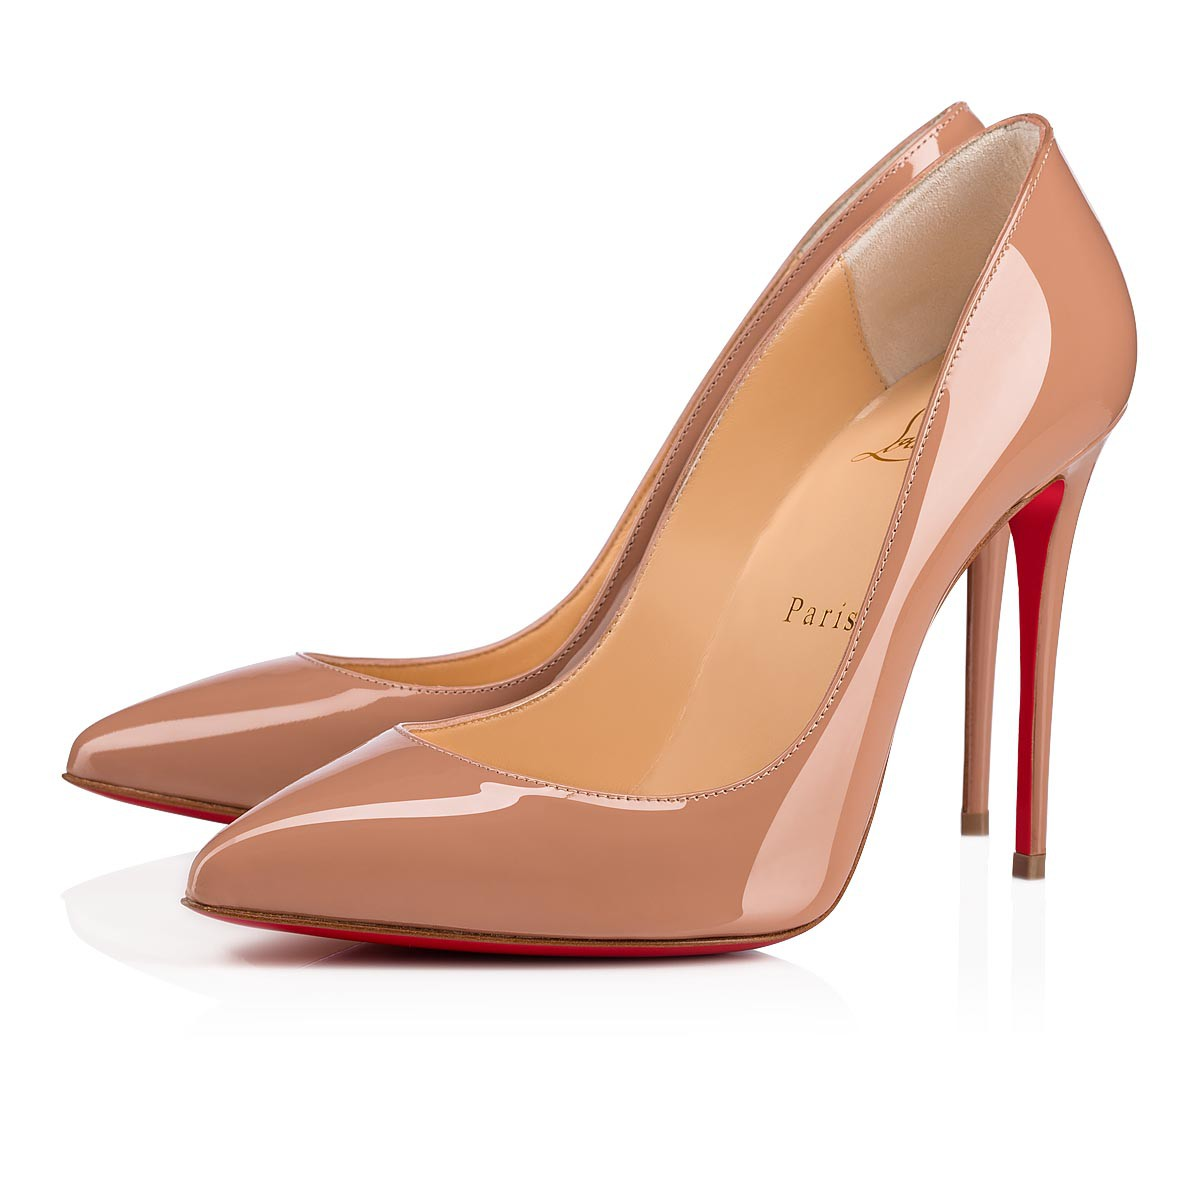 59efb3f7f765 Pigalle Follies 100 Nude Patent Leather - Women Shoes - Christian Louboutin